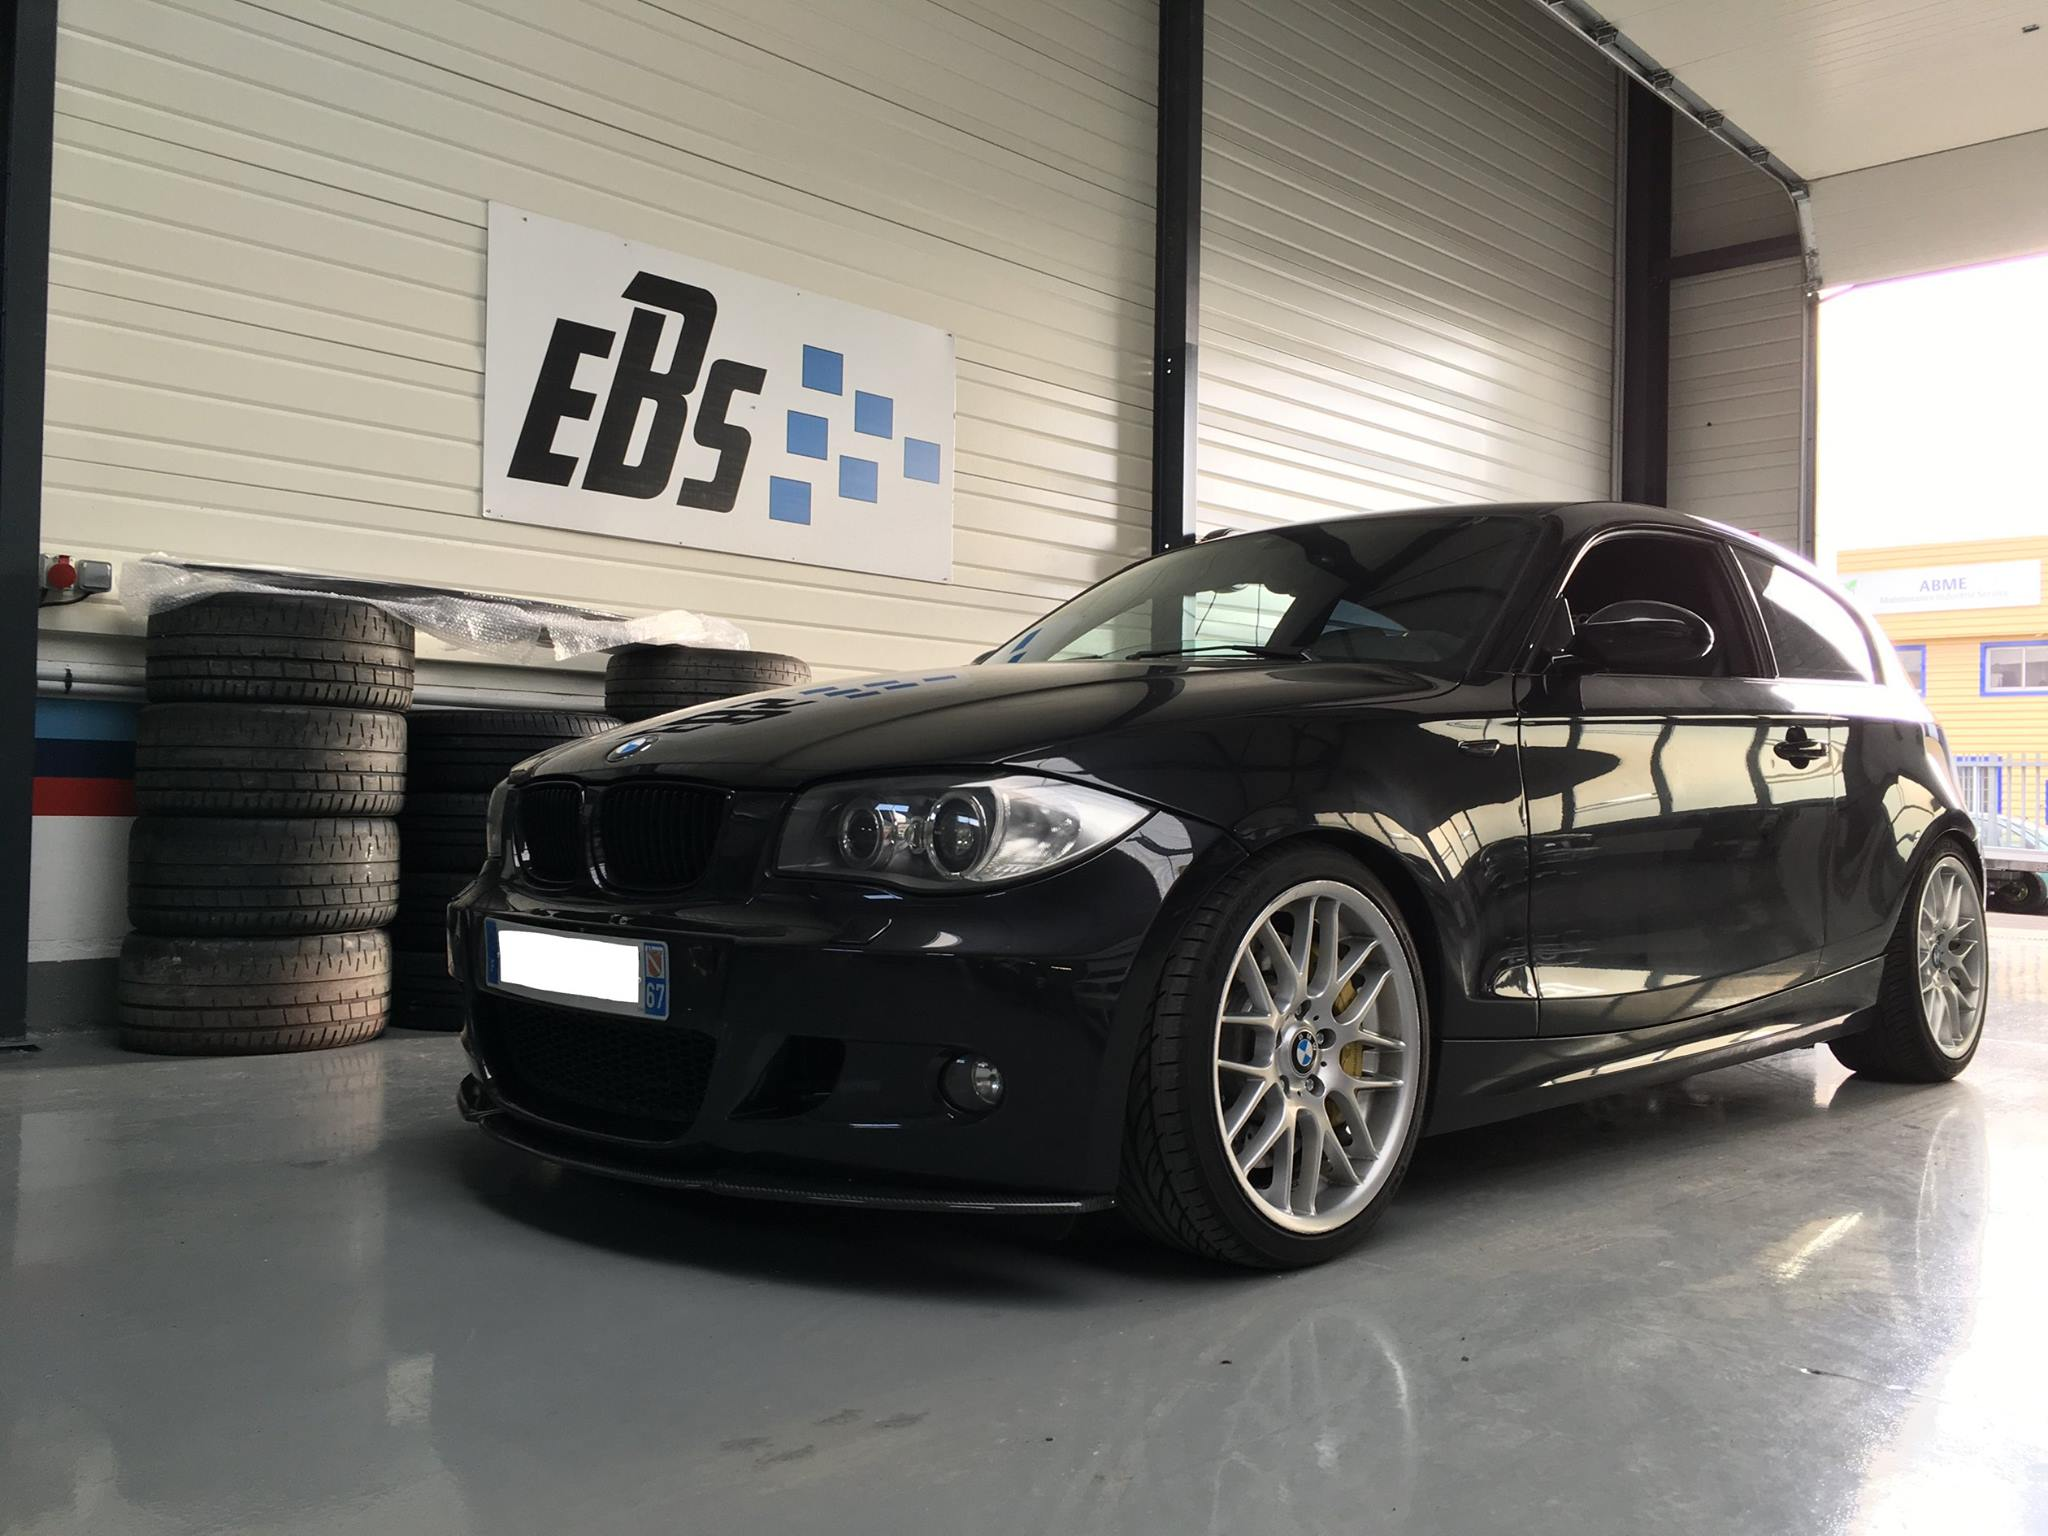 130i Clubsport